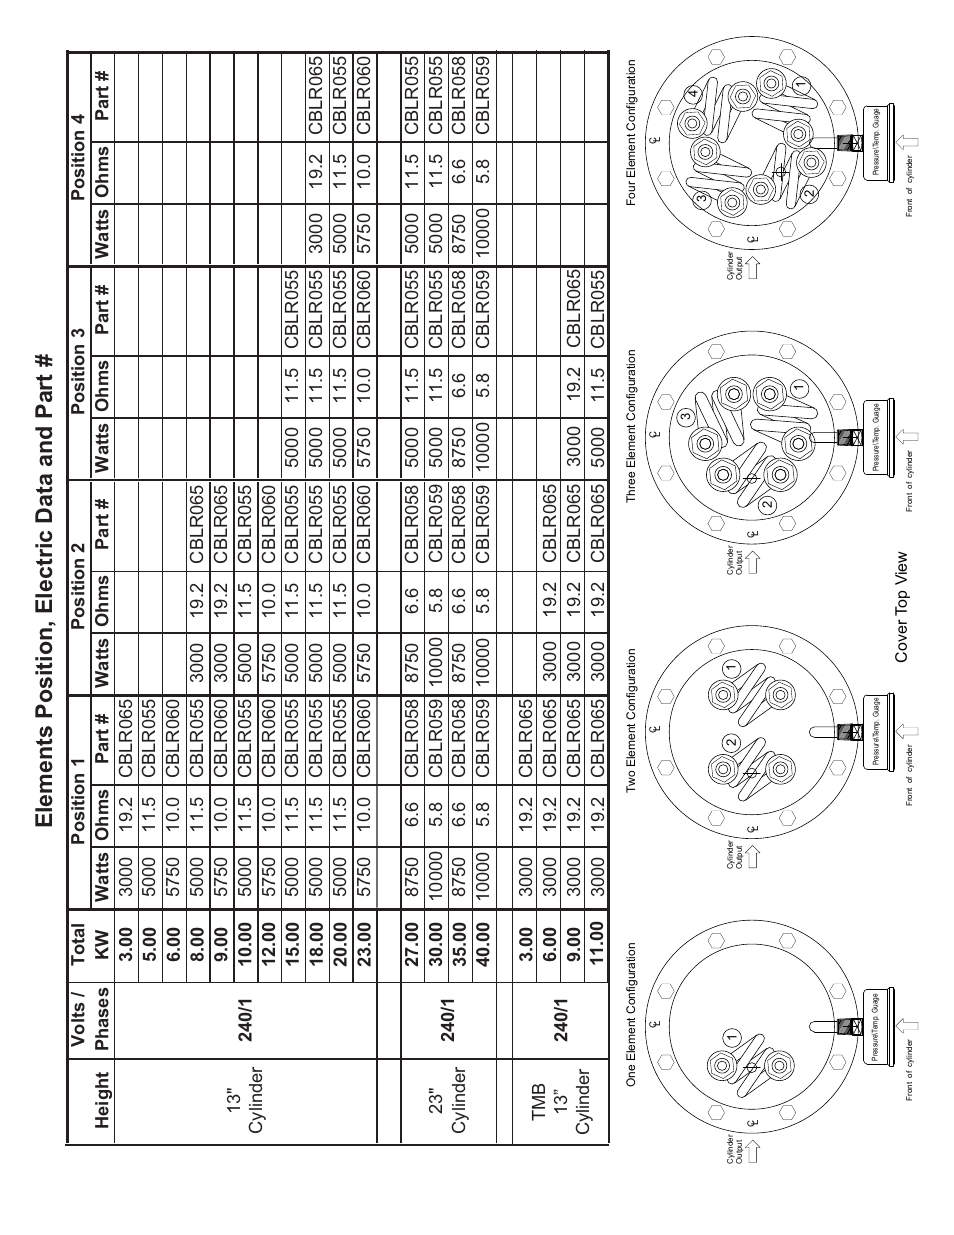 Teledyne Laars Ap Wiring Diagram Page 5 And Single Element Contemporary Boilers Diagrams Crest Standart Hh 2000 Amazing